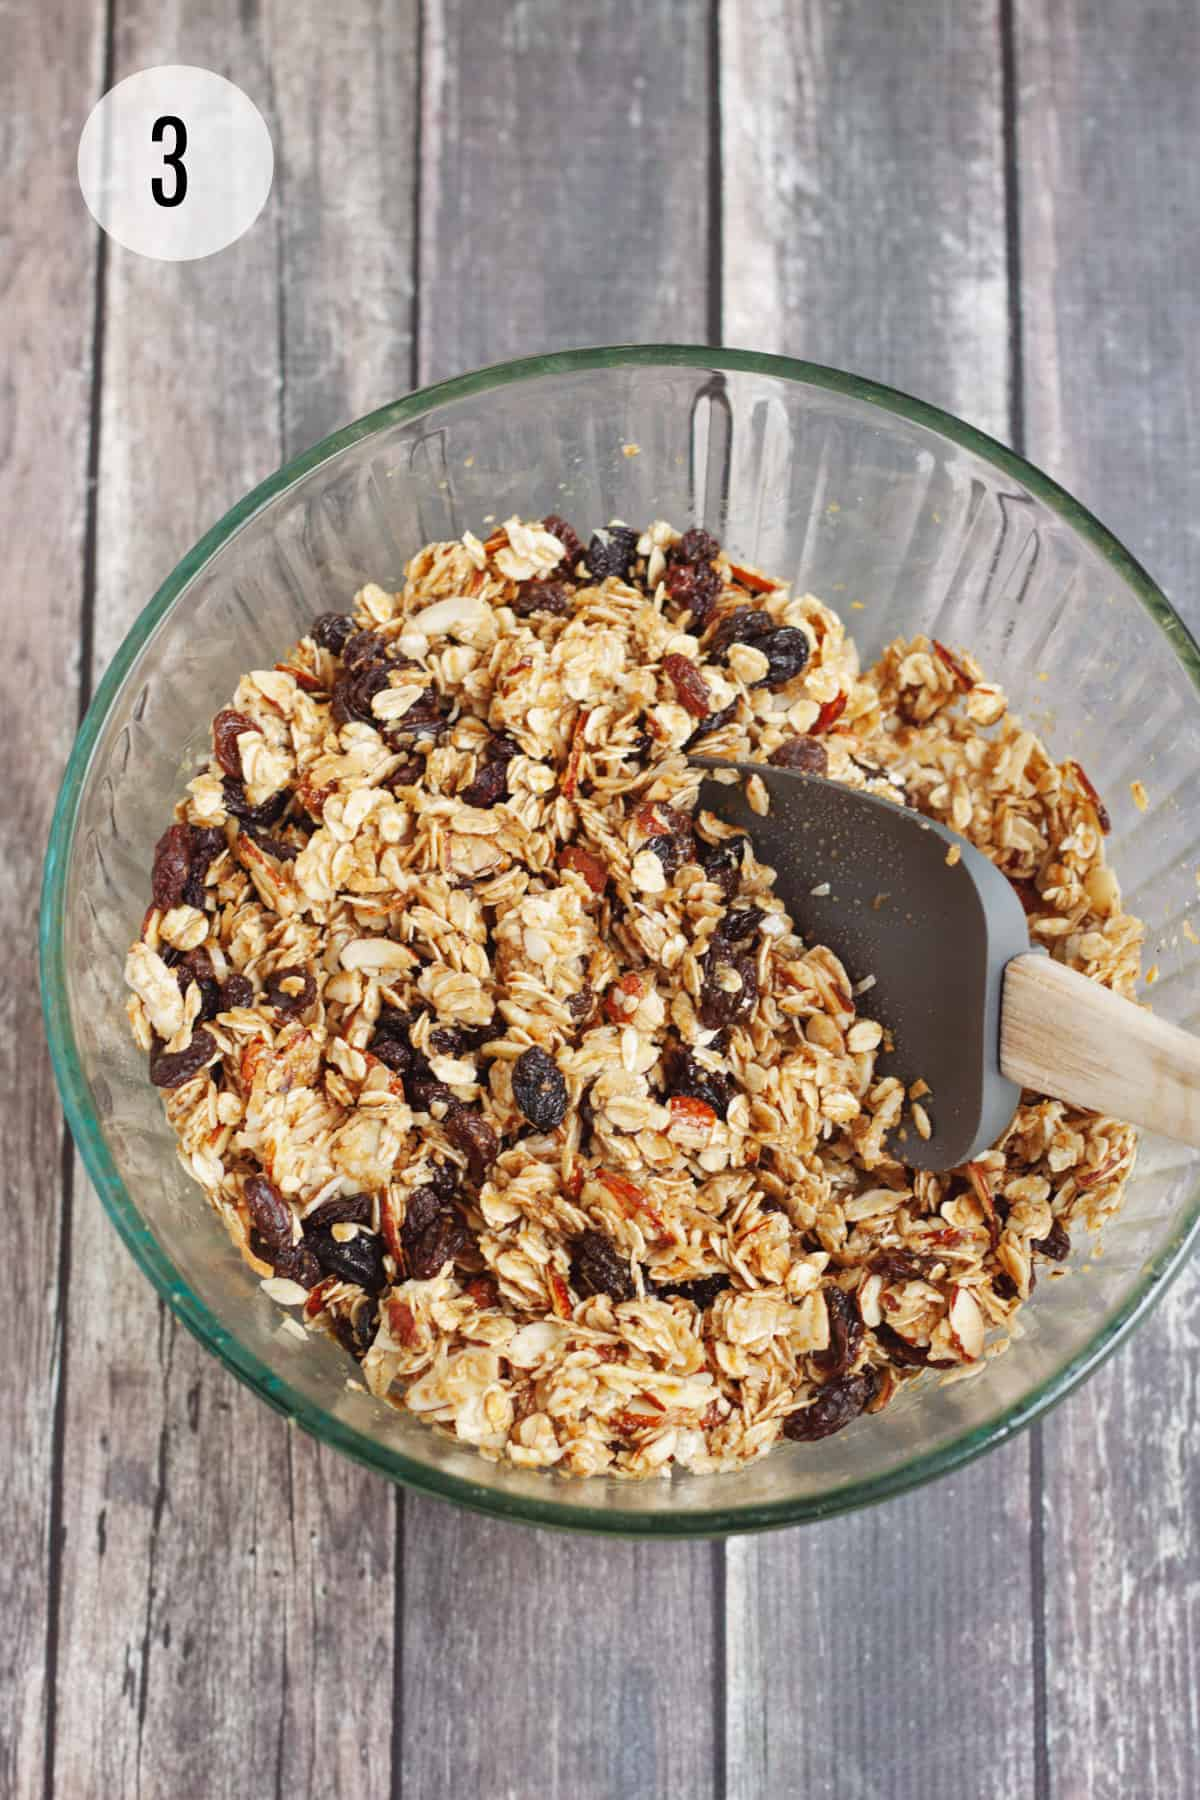 Glass bowl with homemade granola bar ingredients being stirred by grey rubber spatula.